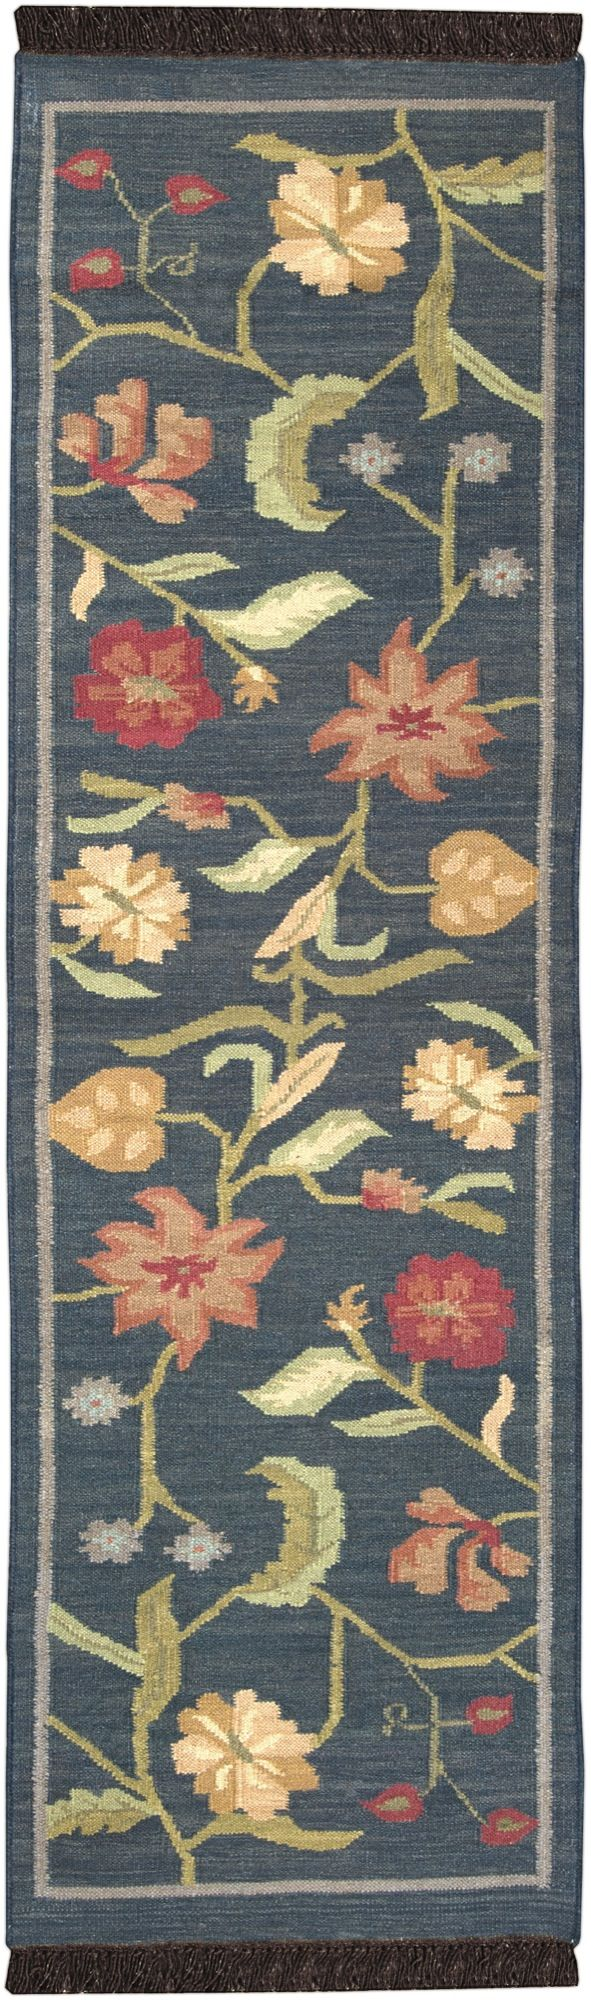 surya jewel tone transitional area rug collection